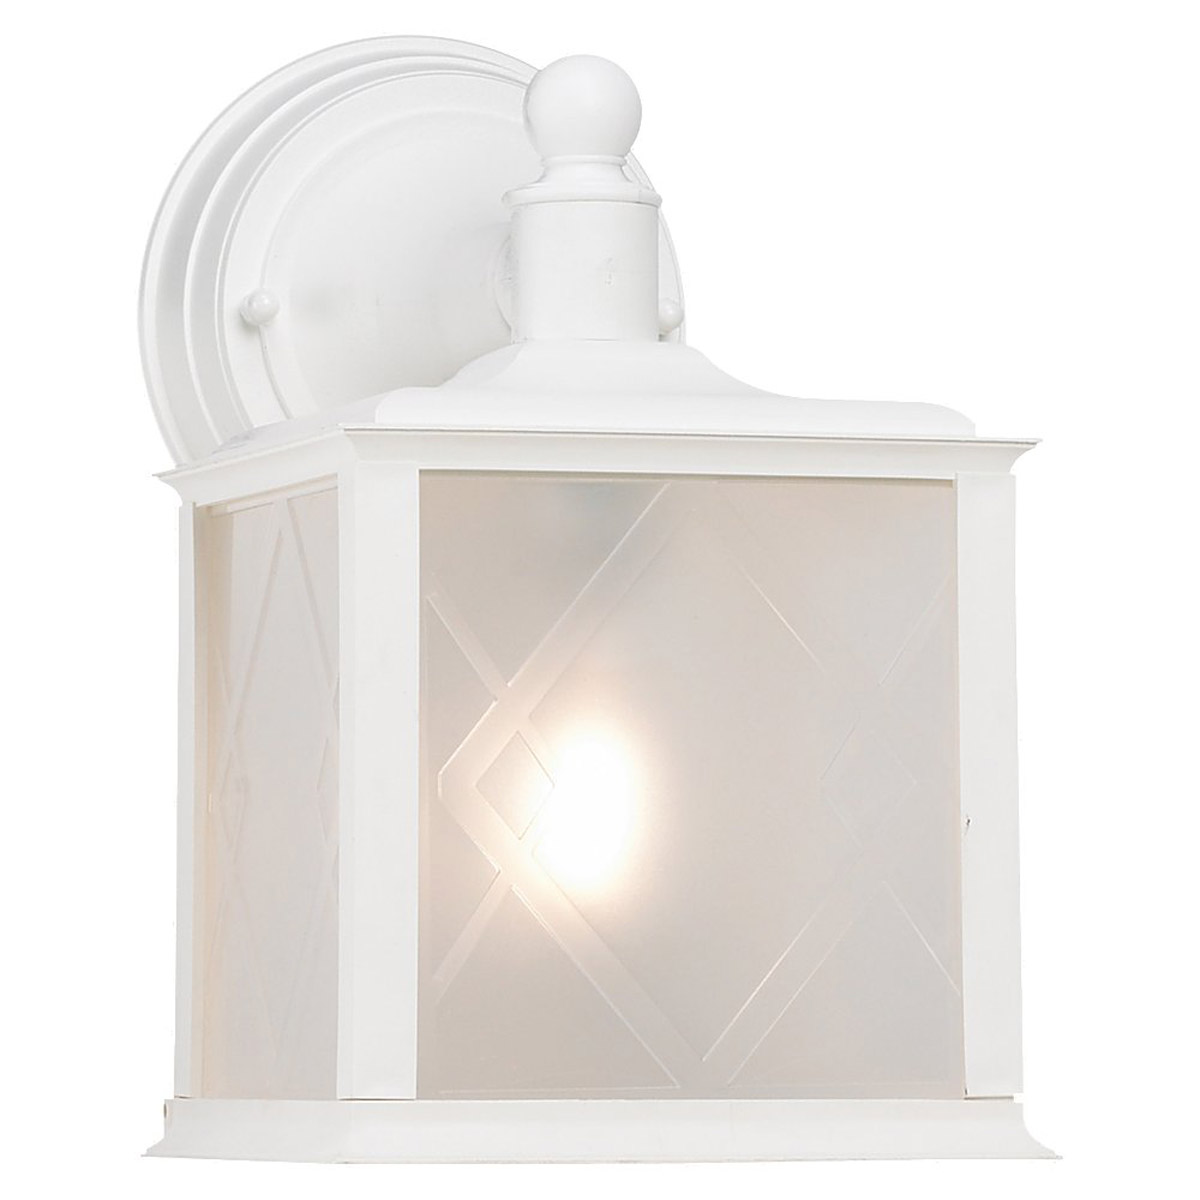 Sea Gull Lighting Harbor Point 1 Light Outdoor Wall Lantern in White 88098-15 photo